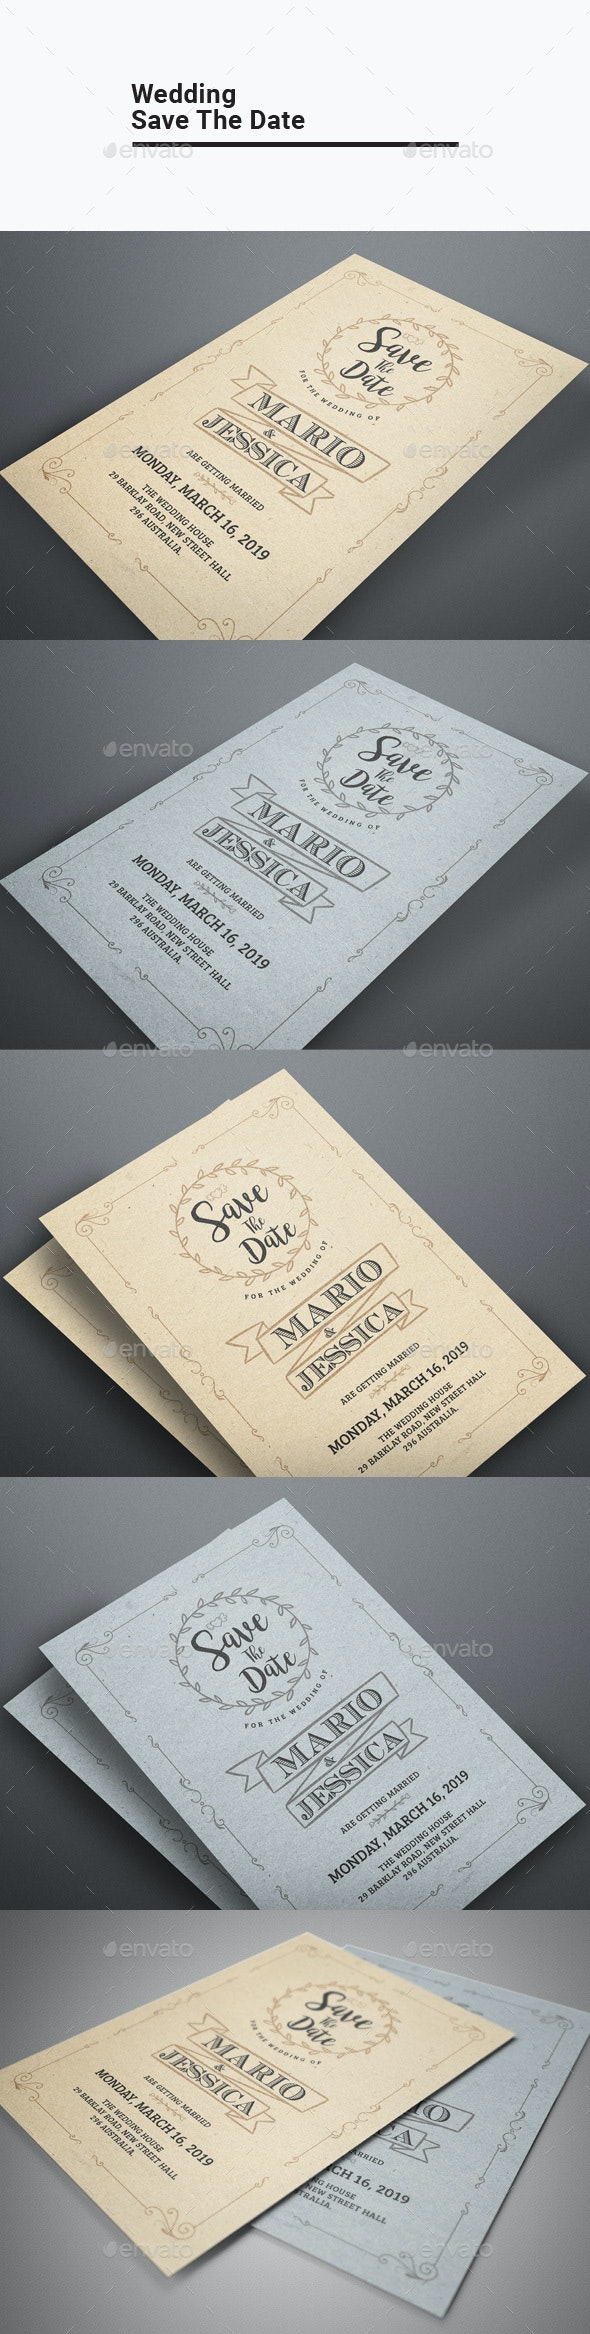 Wedding Save The Date - Invitations Cards & Invites